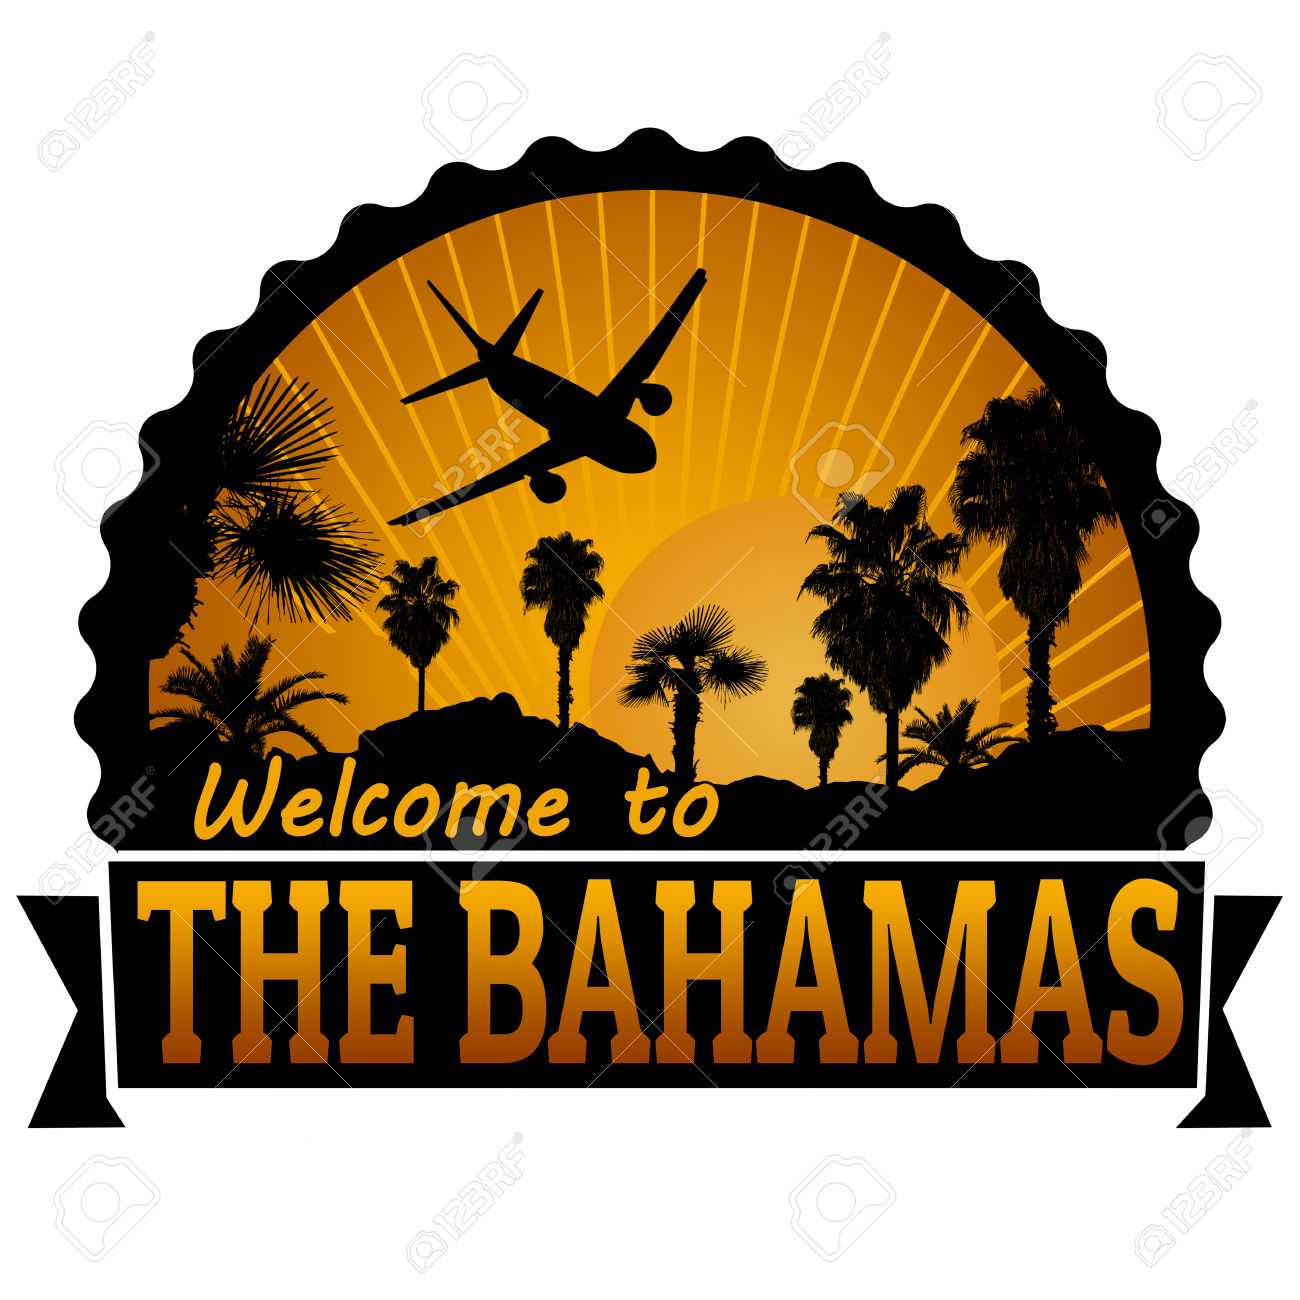 Bahamas clipart #12, Download drawings